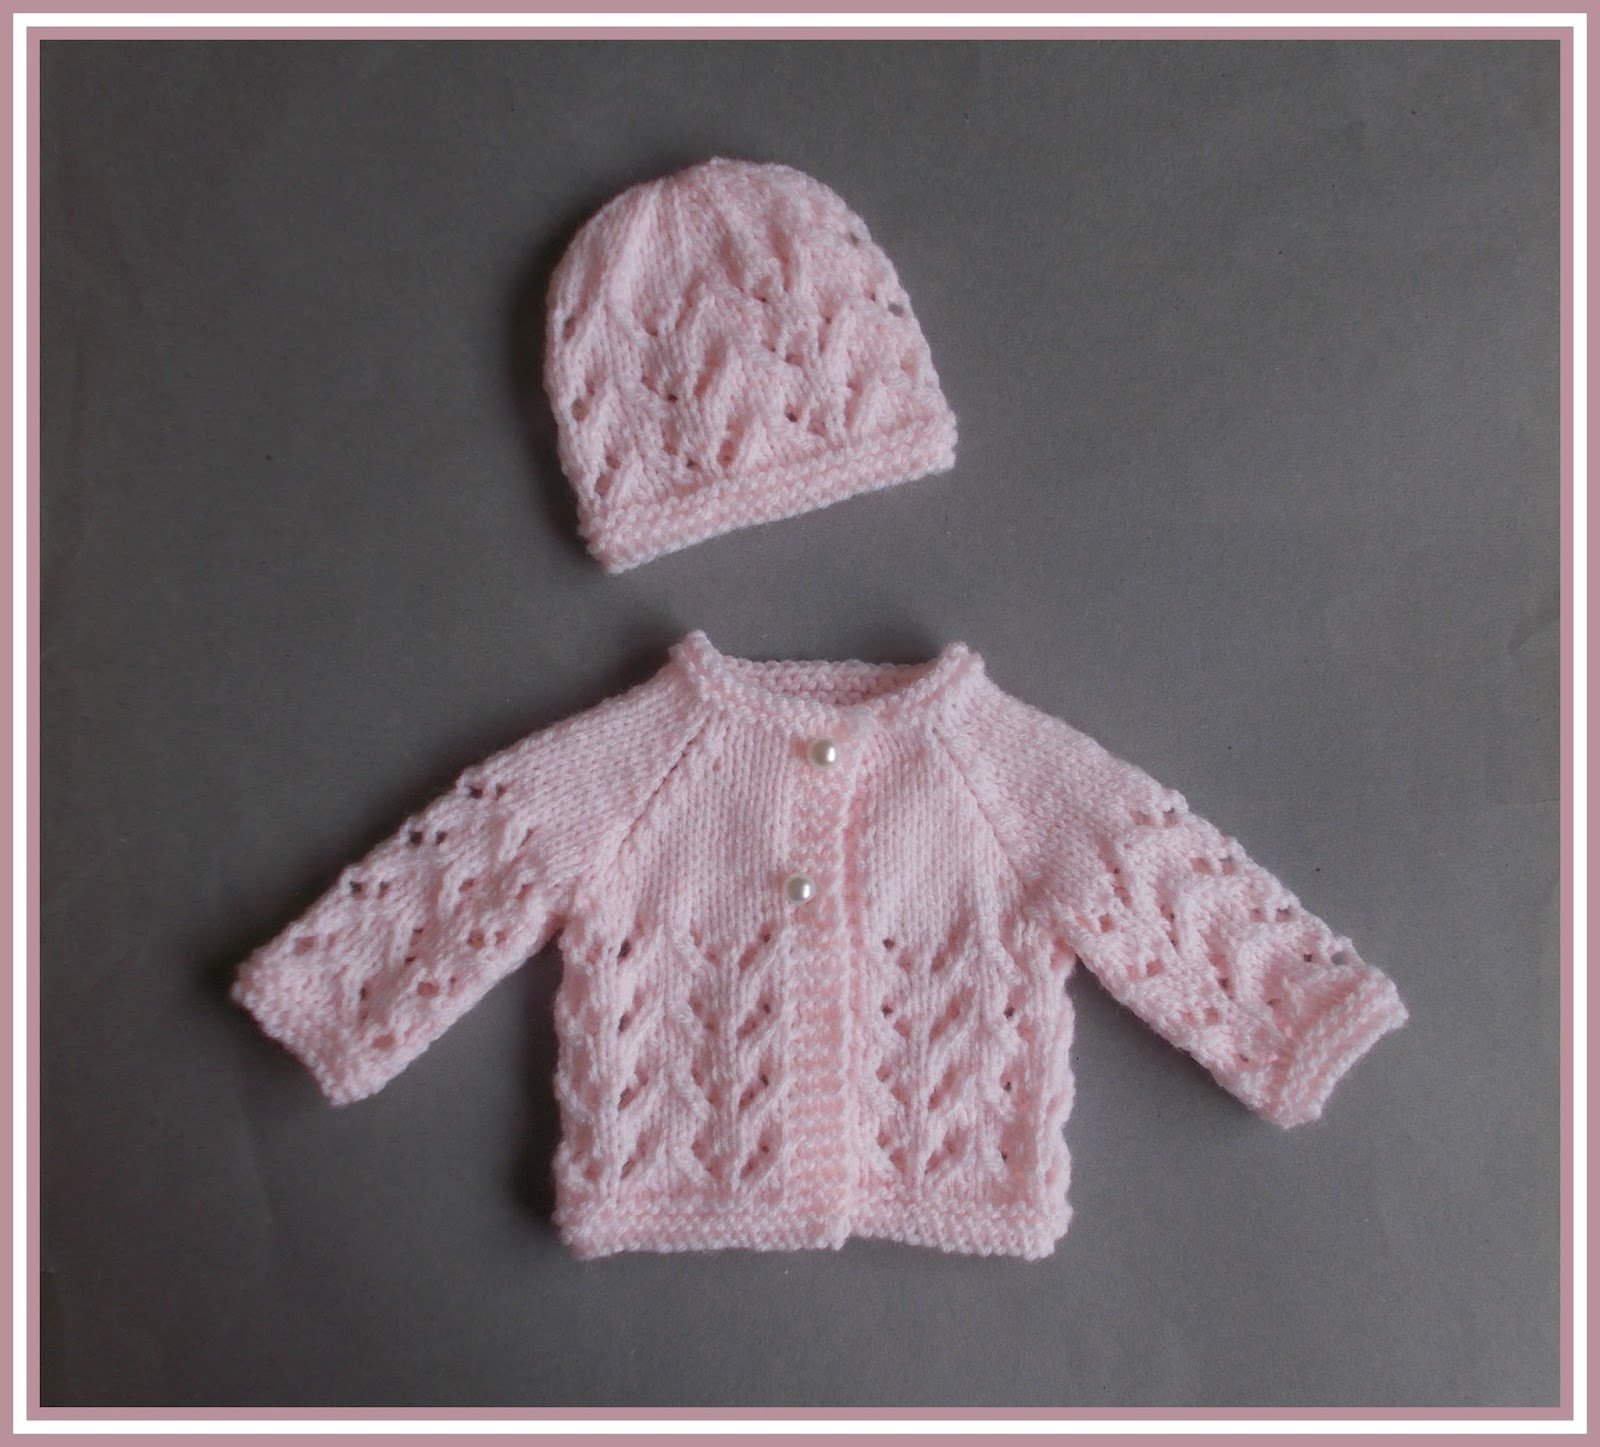 Free Knitting Patterns For Sweater Coats Free Knitting Patterns For Newborn Sweaters